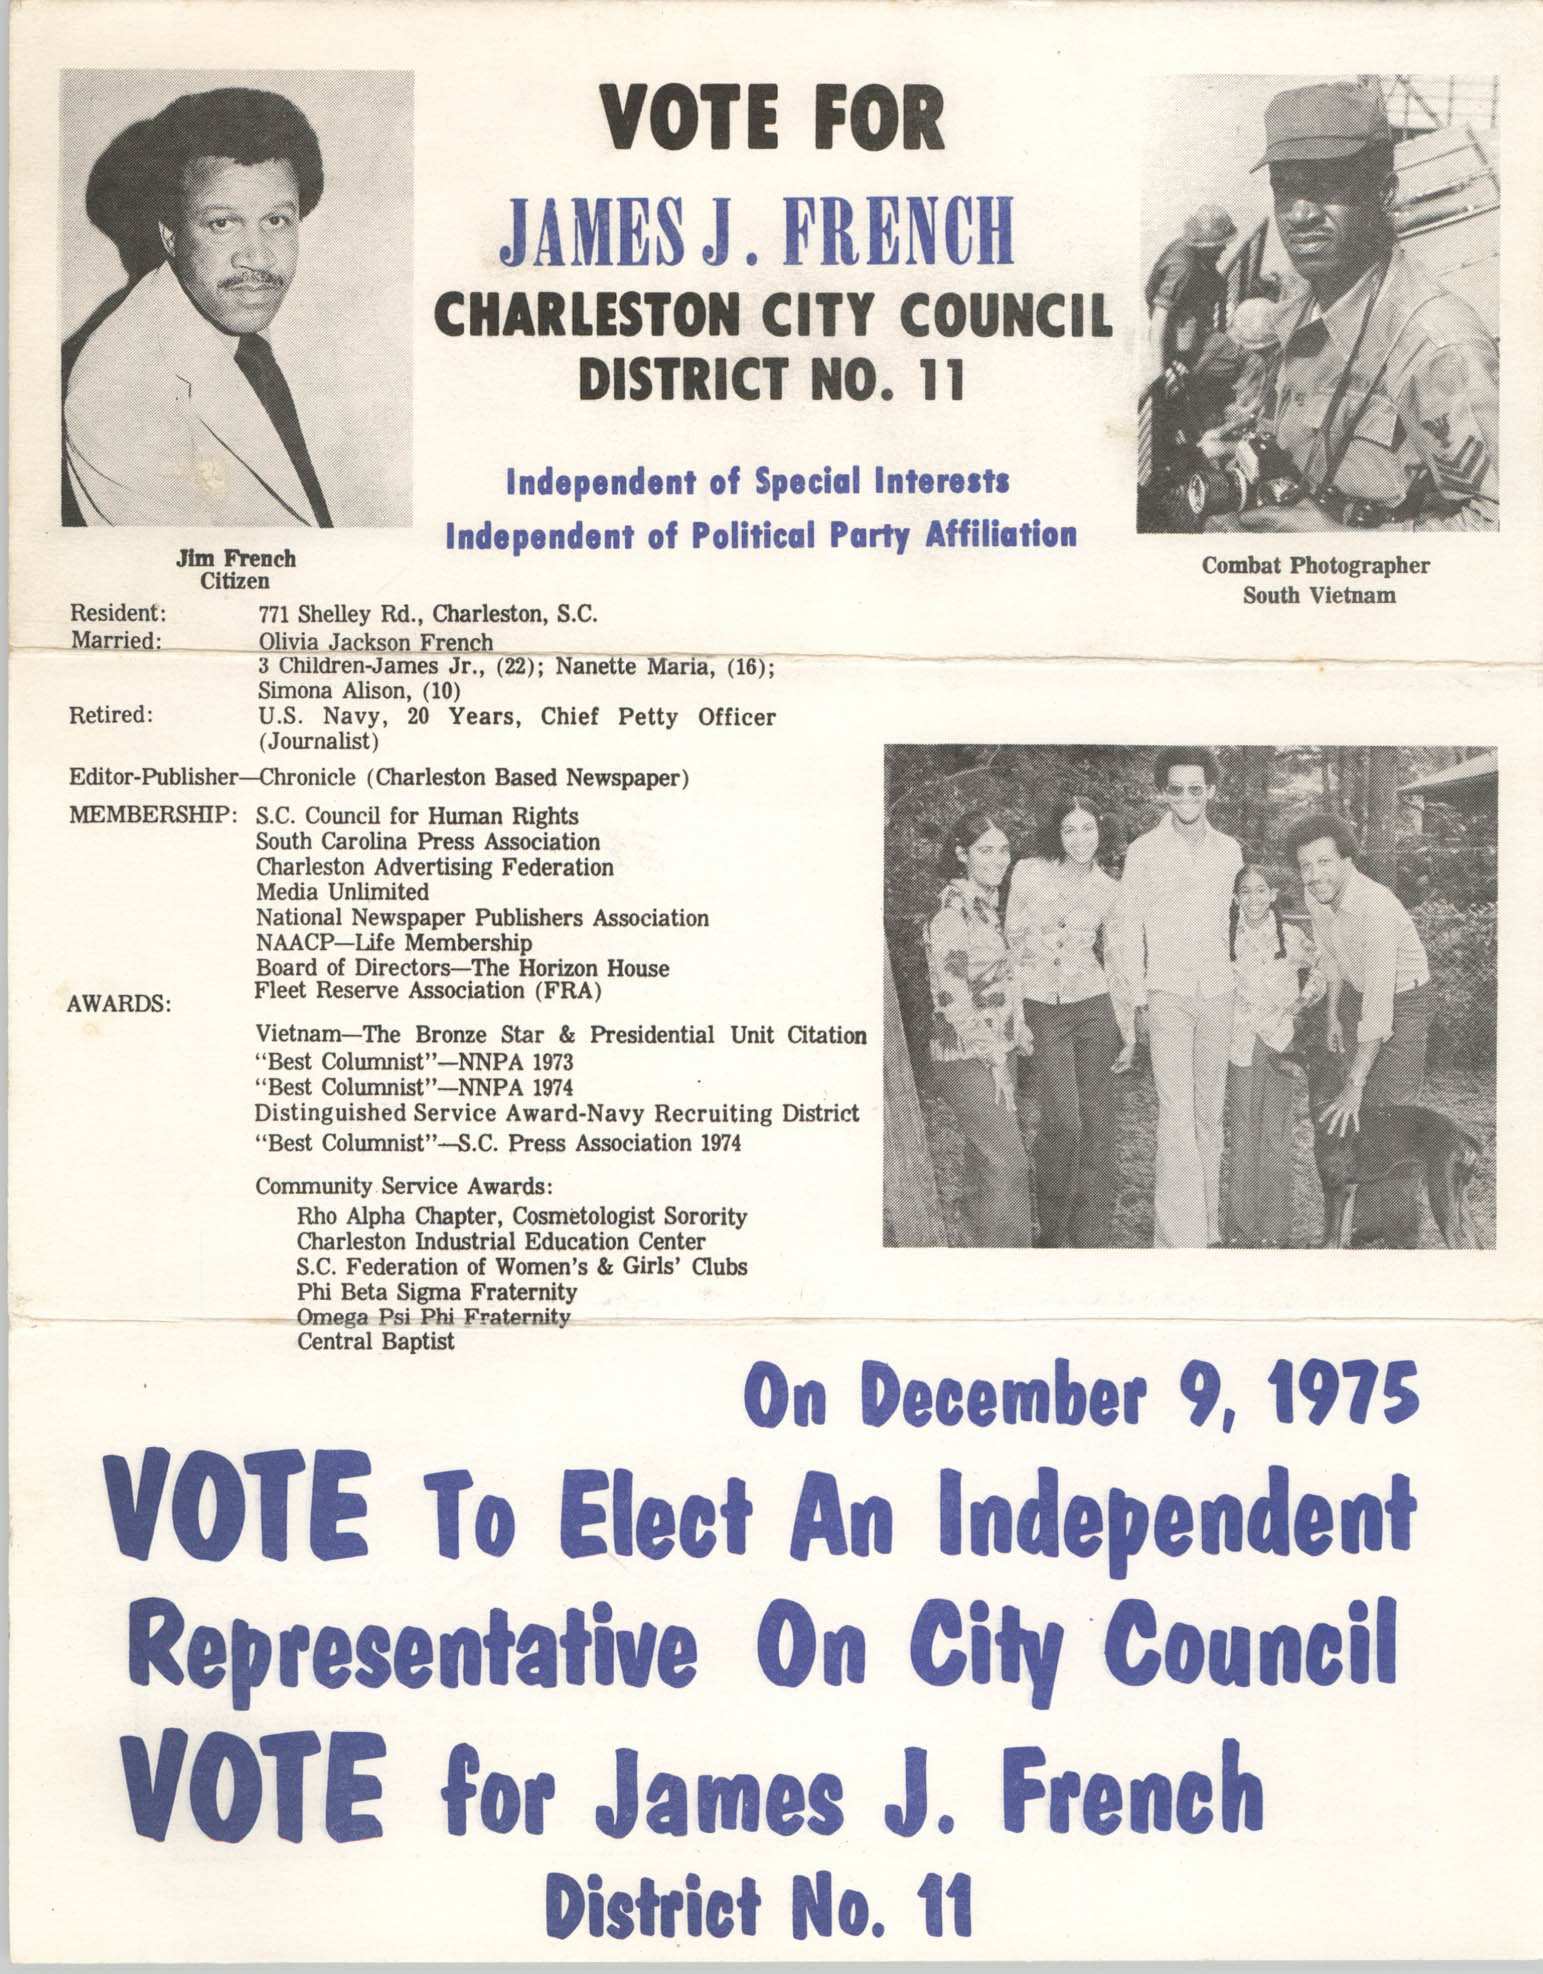 James J. French, Campaign Materials